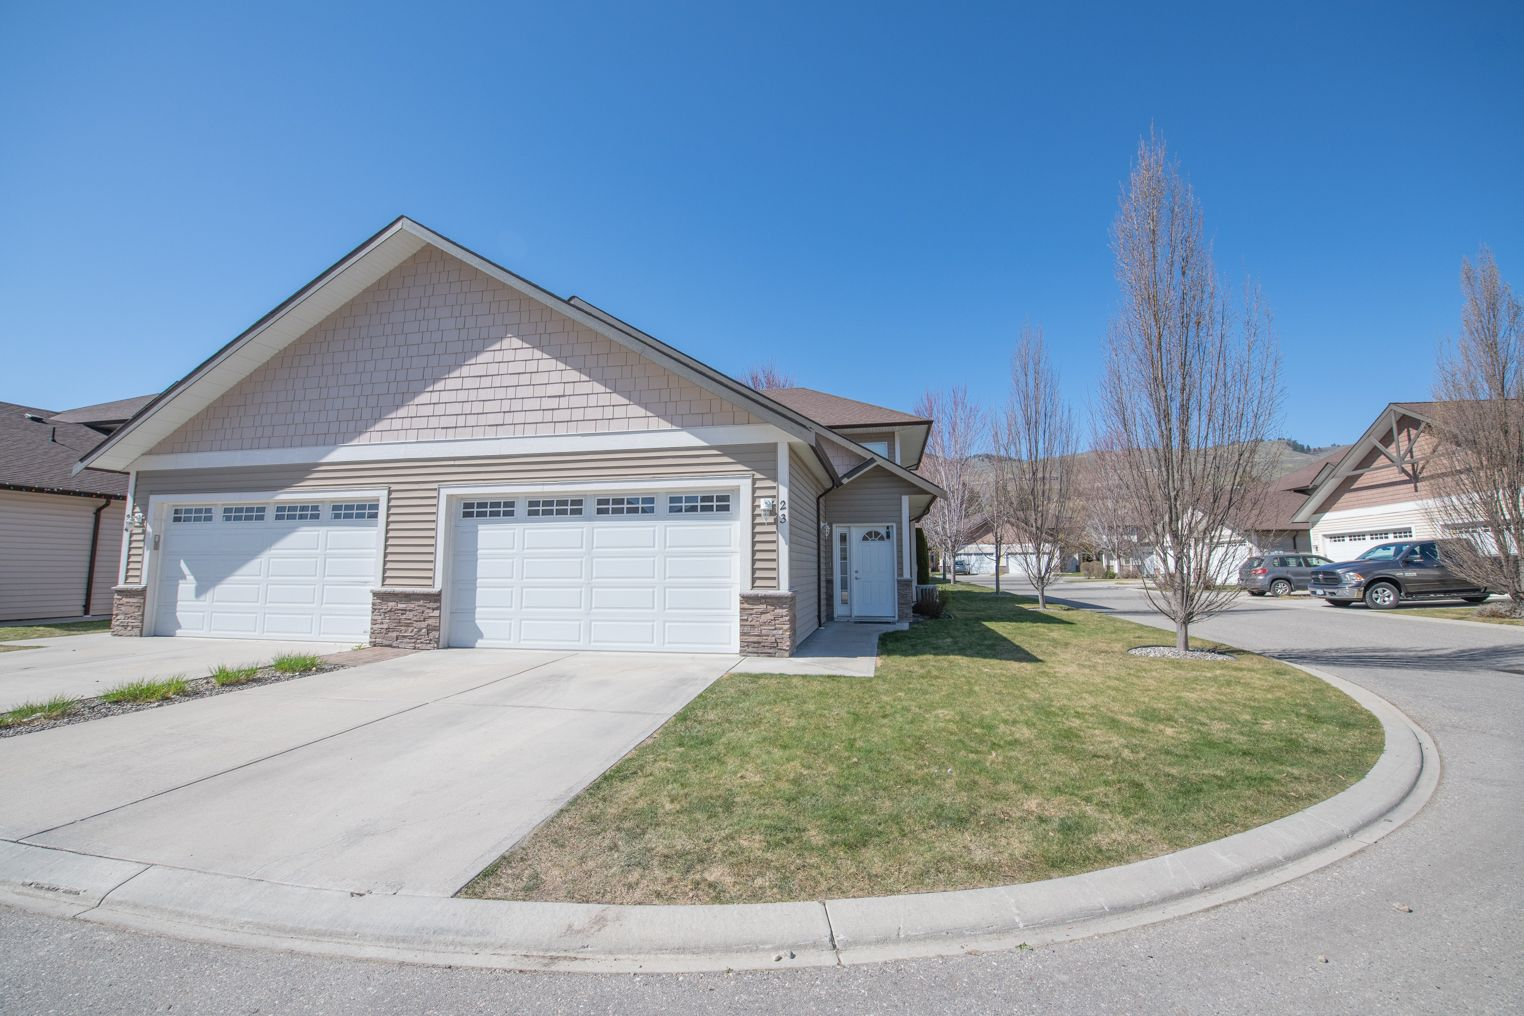 Main Photo: 23 100 Palmer Road in Vernon: House for sale : MLS®# 10229957